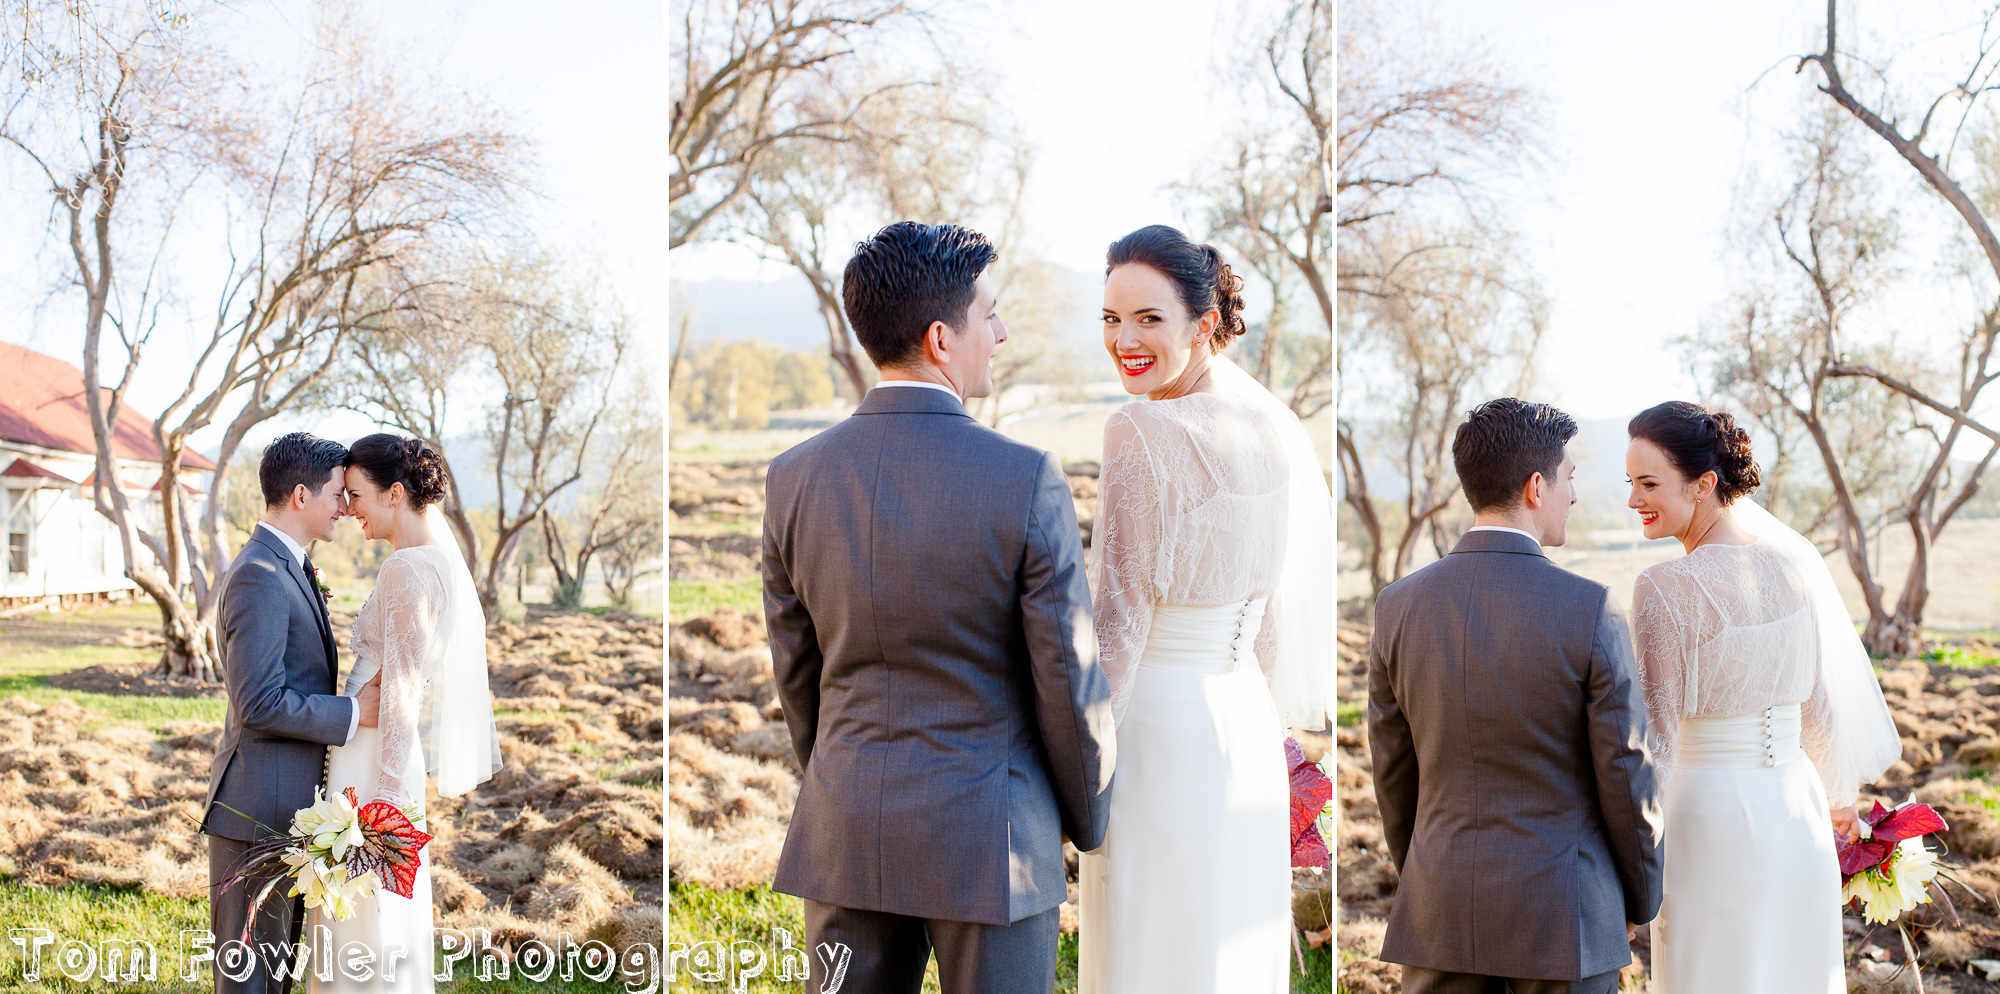 Santa_Margarita_Ranch_Wedding_TomFowlerPhotography_Wedding_Photographer-20